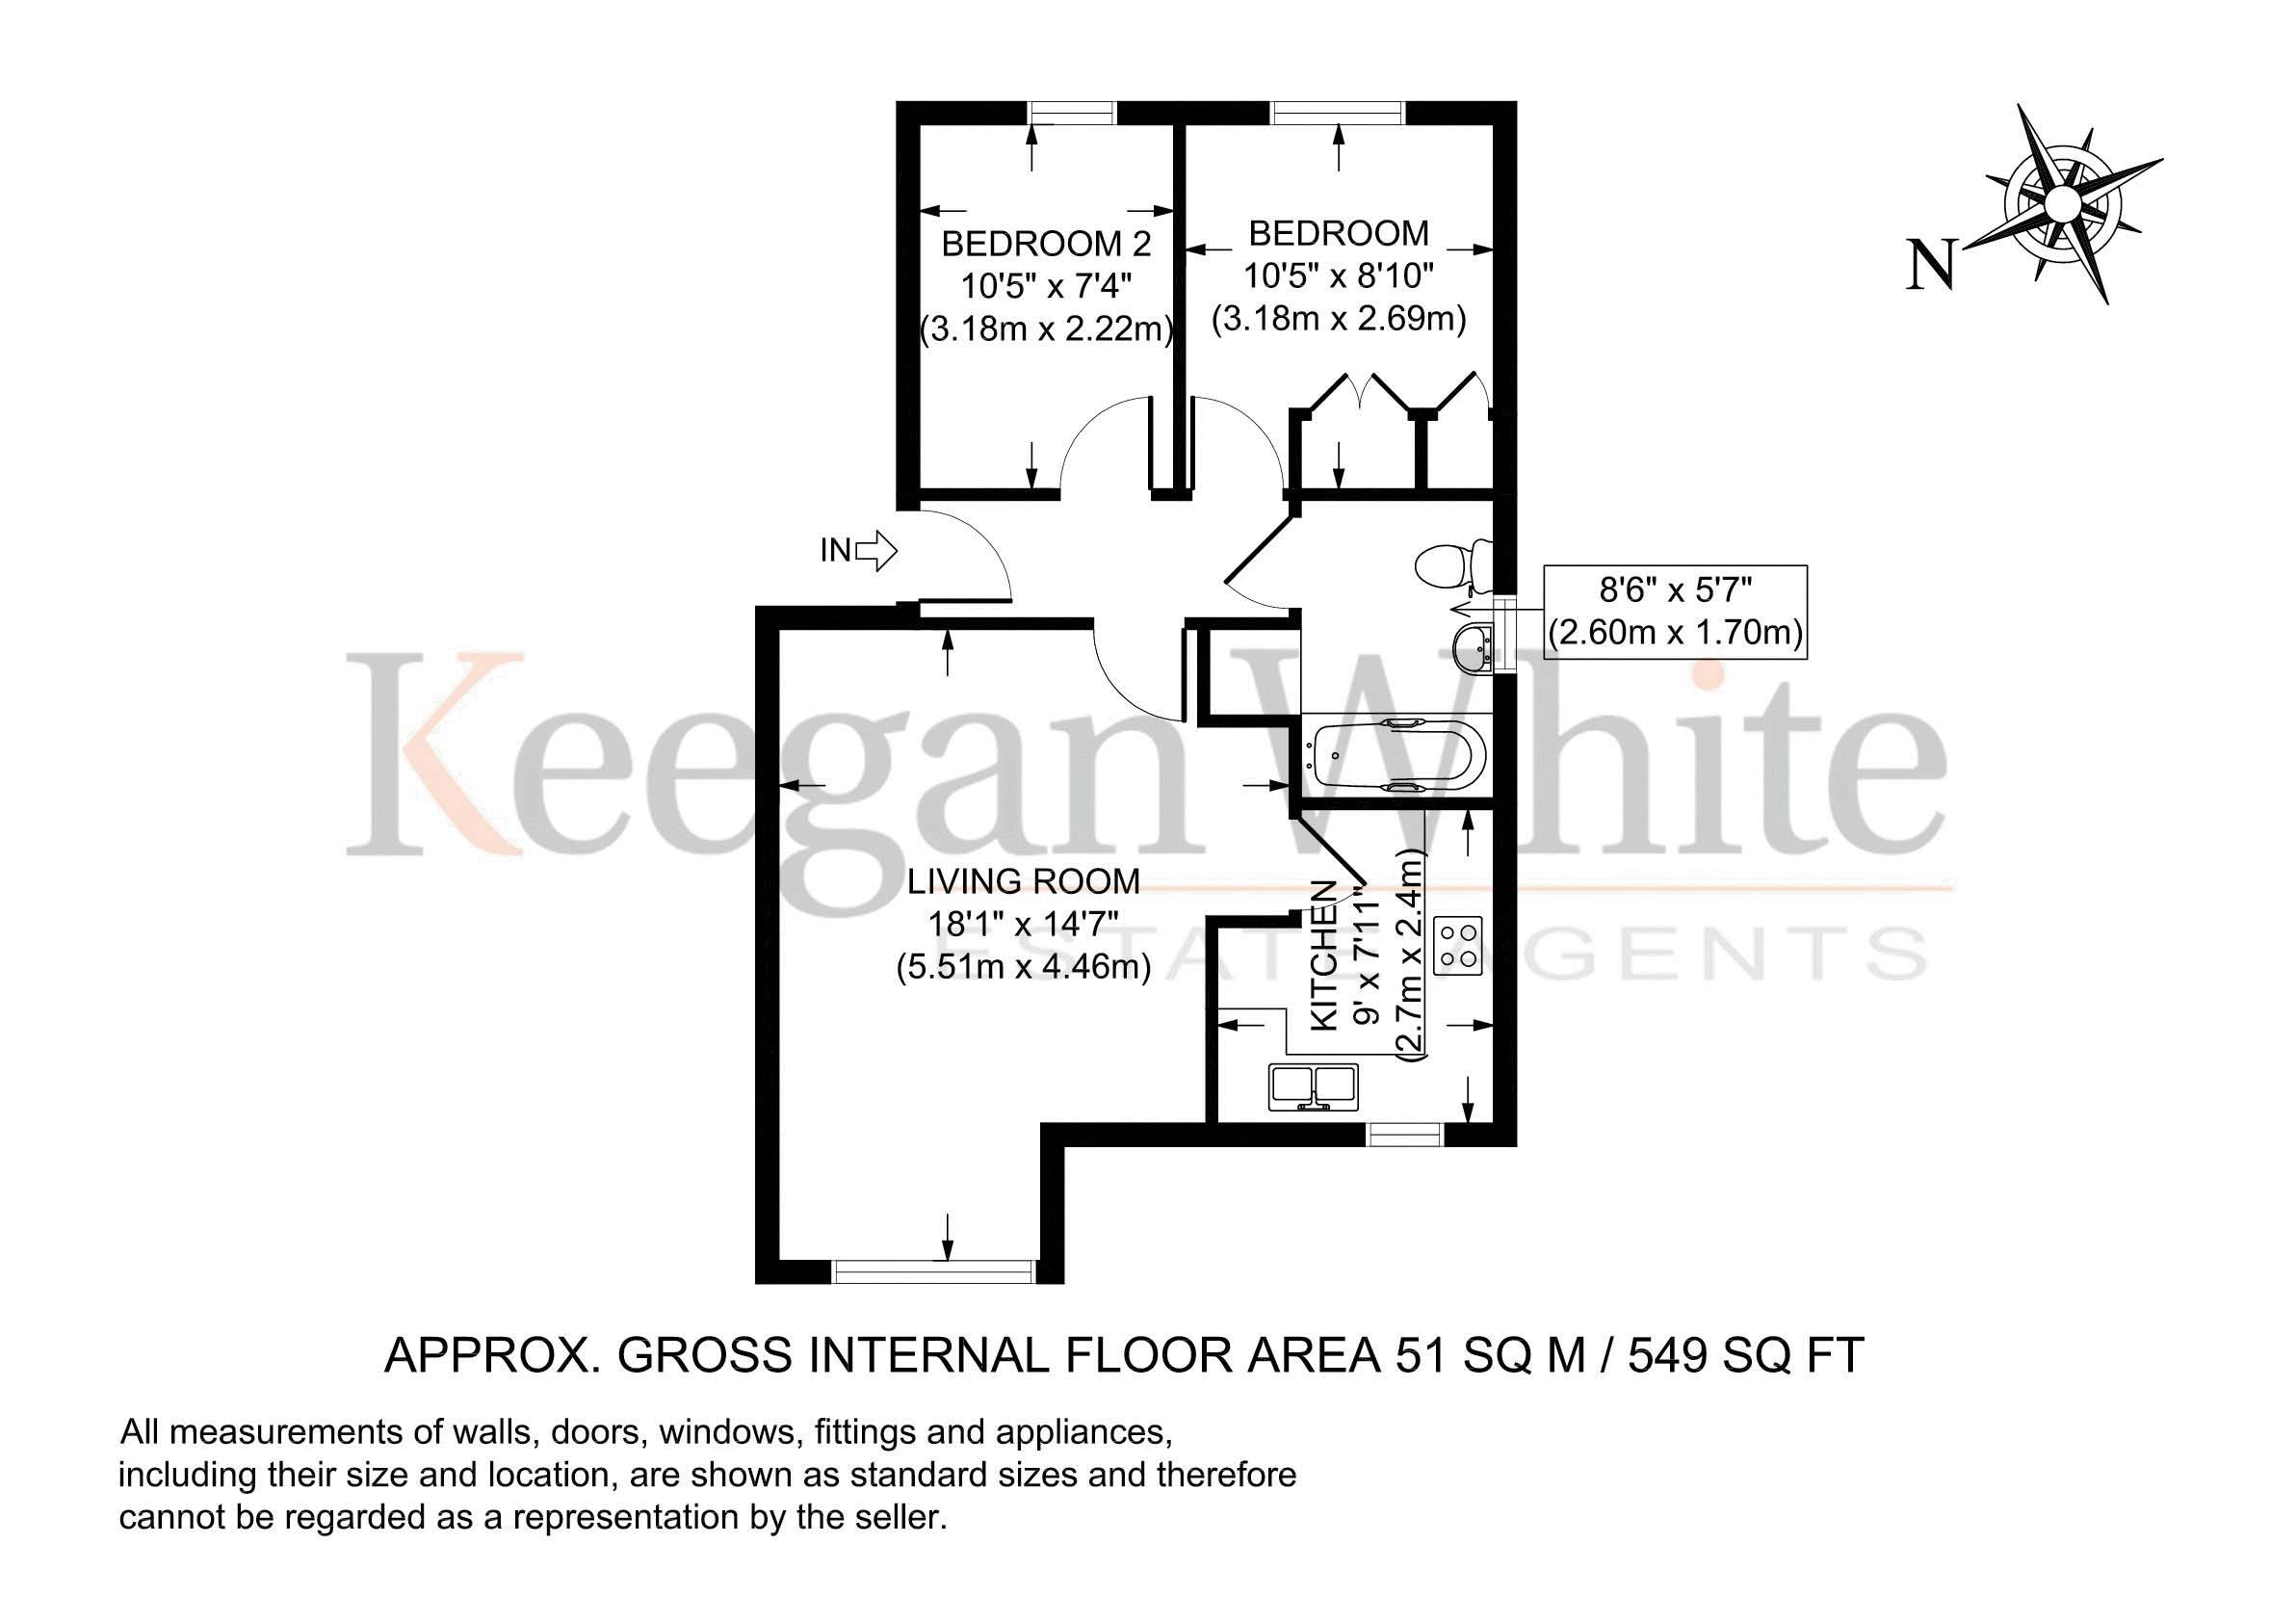 Keegan White Estate agent High Wycombe - Floorplan